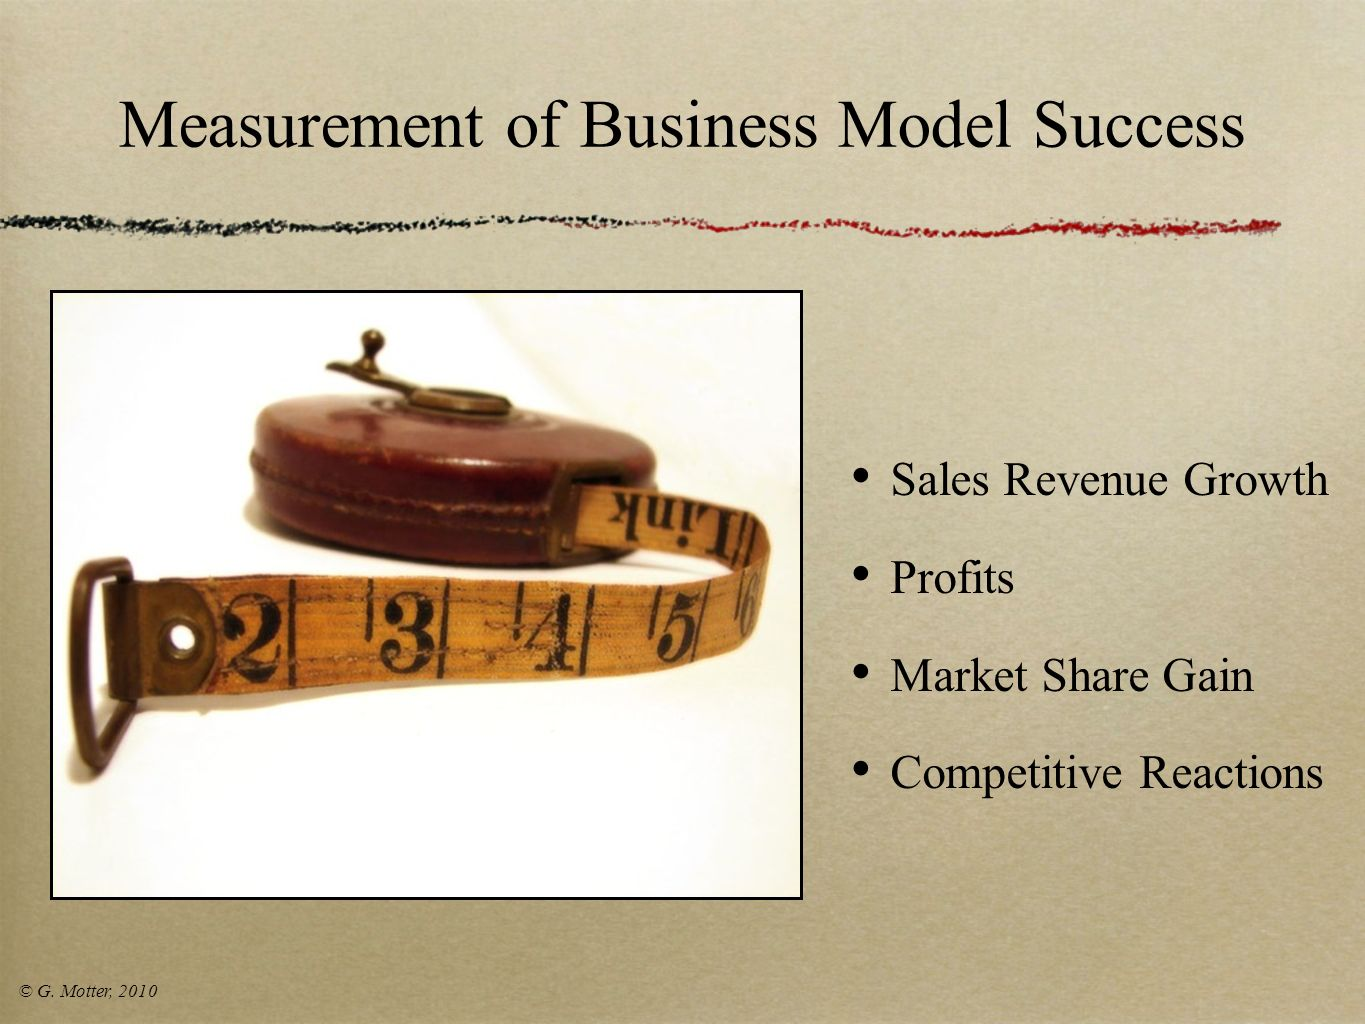 Measurement of Business Model Success